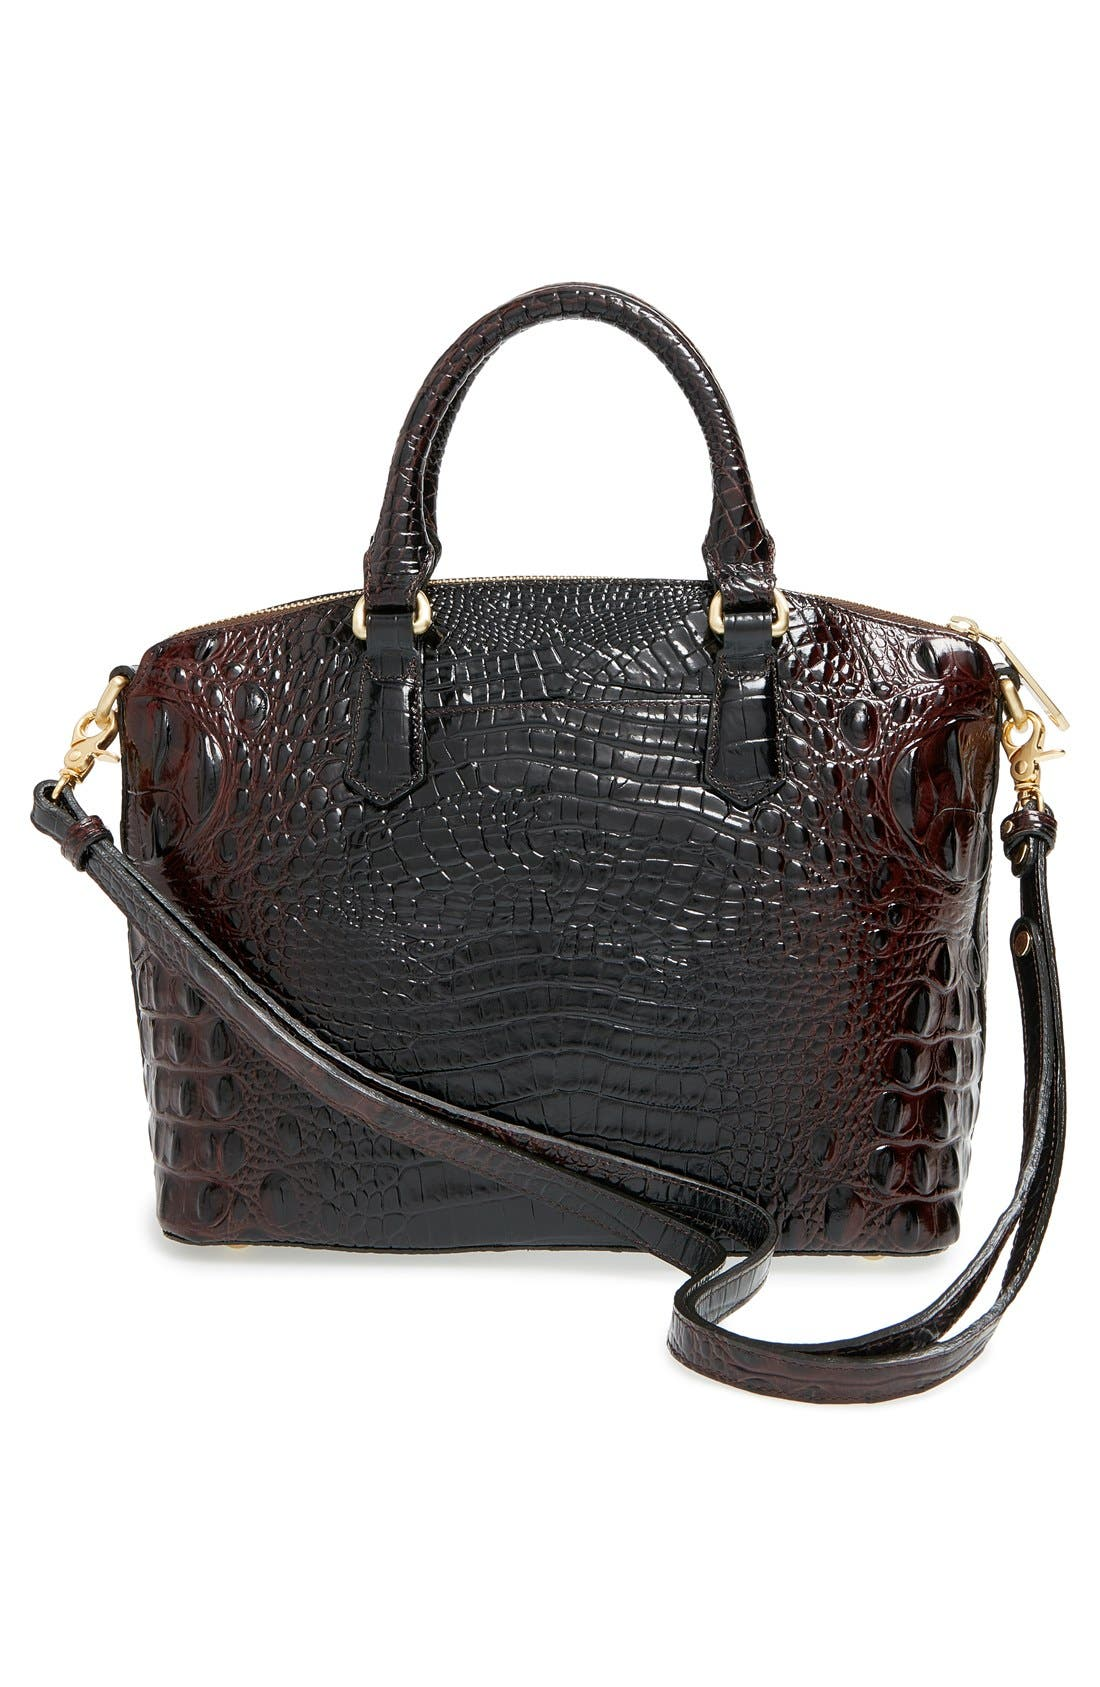 'Medium Duxbury' Croc Embossed Leather Satchel,                             Alternate thumbnail 55, color,